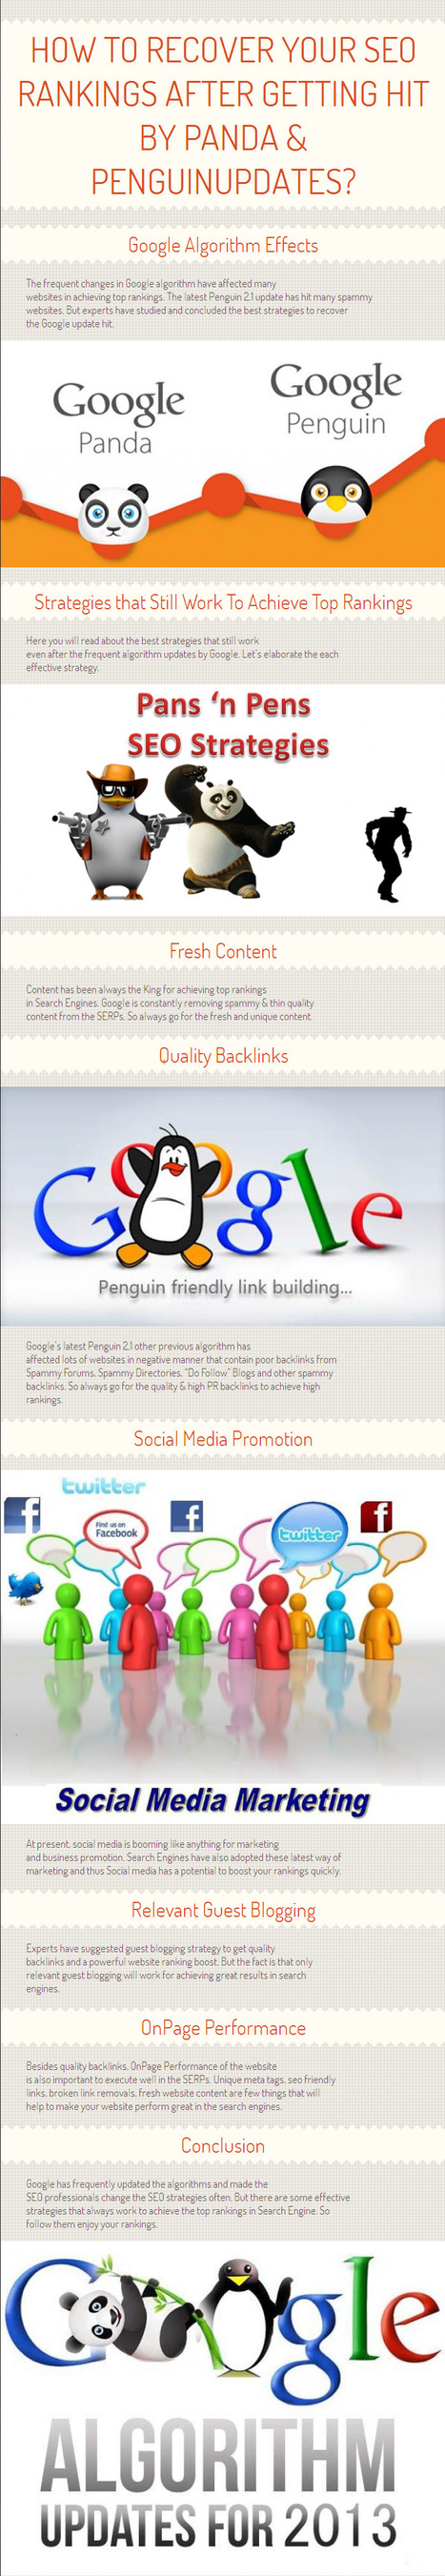 How To Recover Your SEO Rankings After Getting Hit By Panda & Penguin Updates? By www.topranker.biz | Topranker | Scoop.it